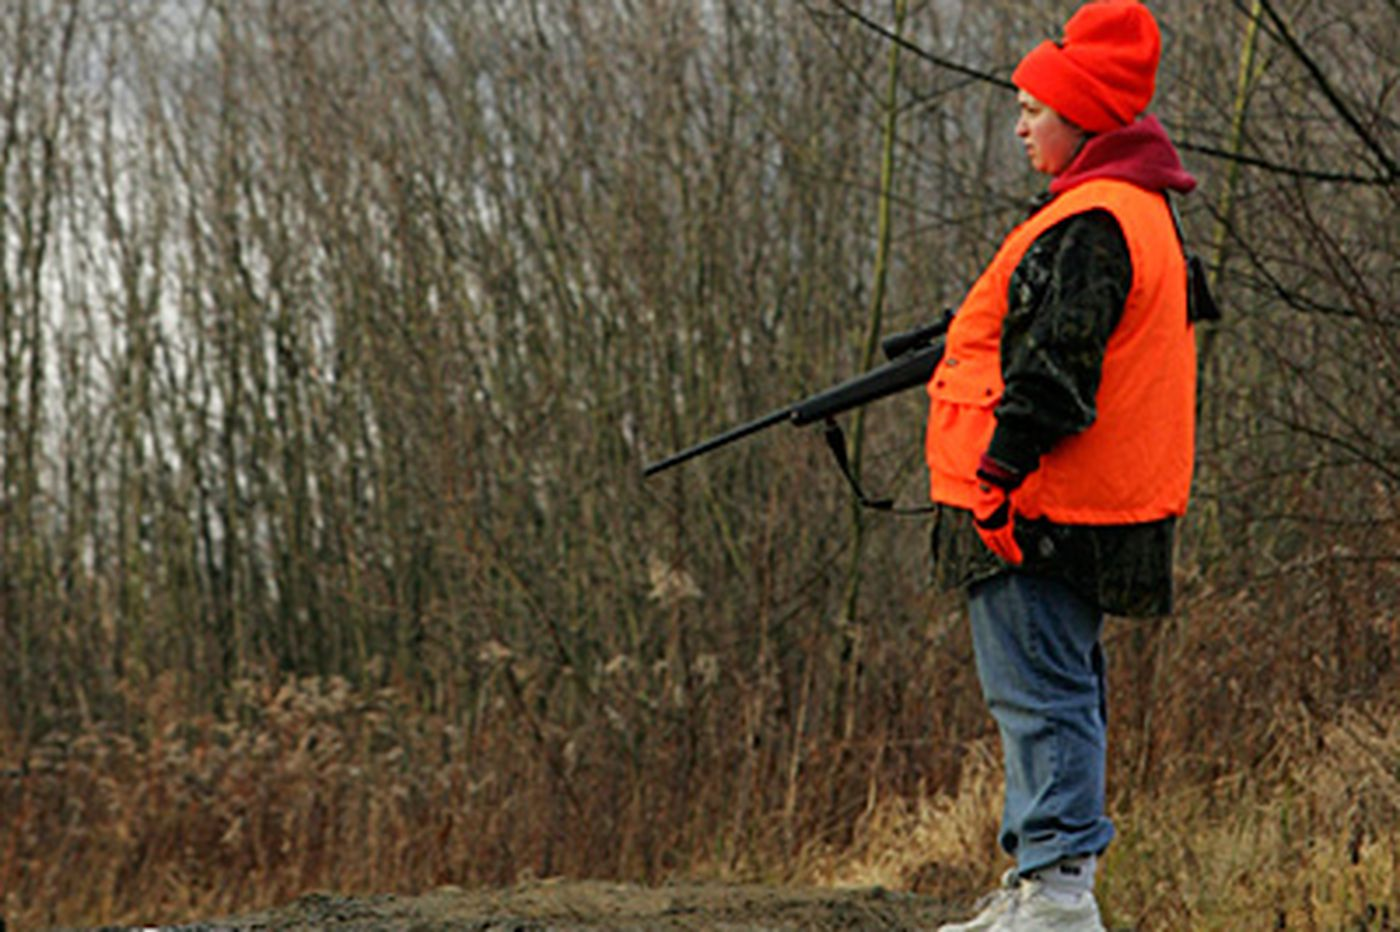 Sunday hunting pits NRA against farm, recreation groups